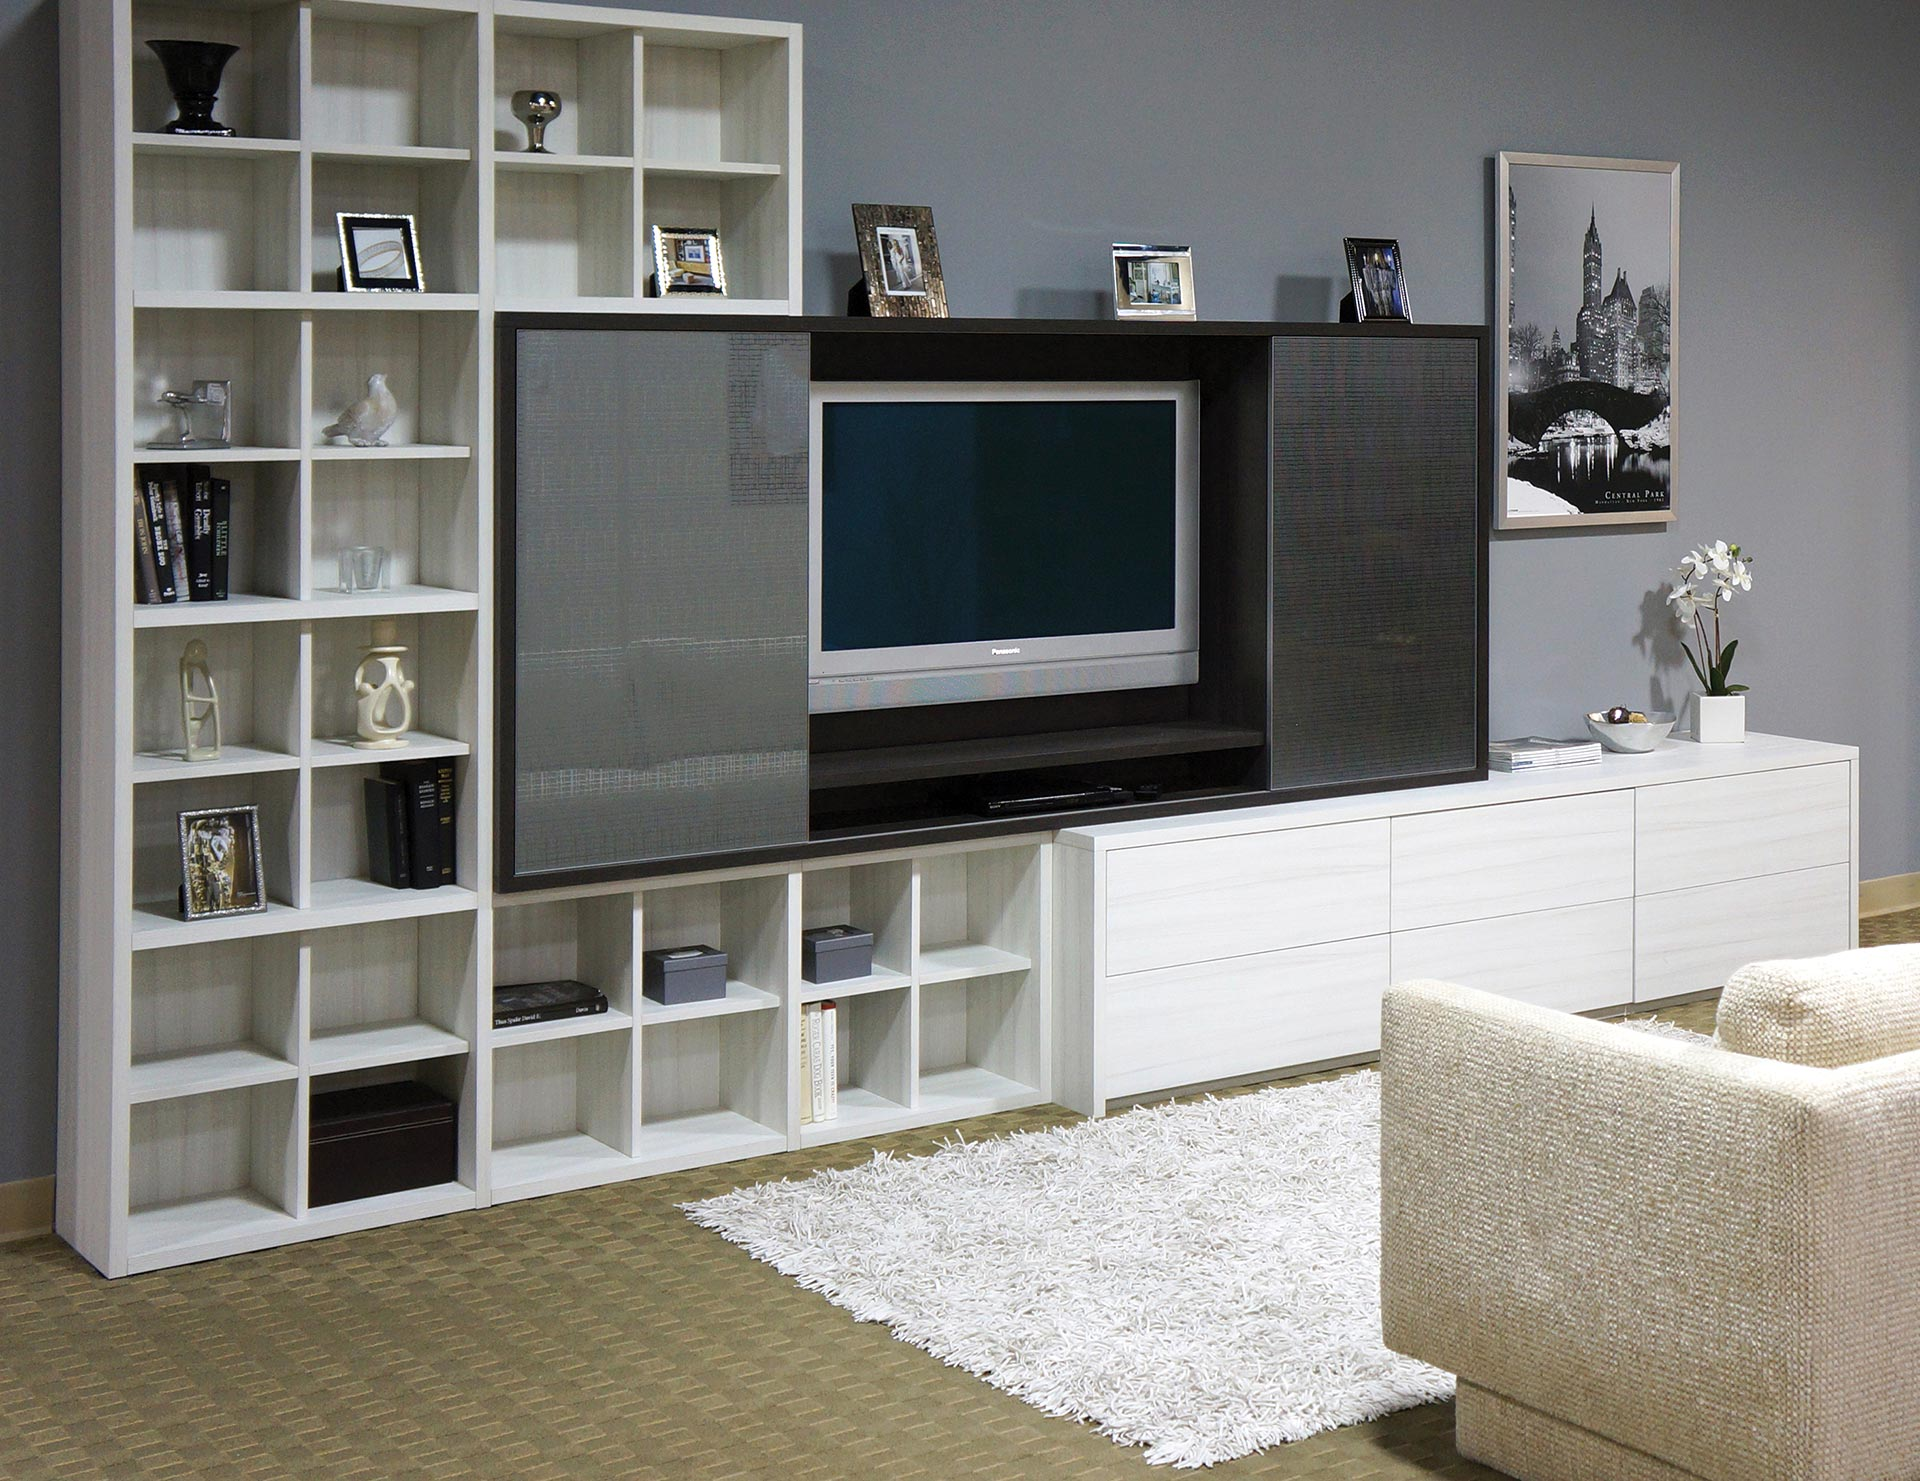 built in entertainment centers media cabinets california closets rh californiaclosets com entertainment center side shelves entertainment center shelves plans